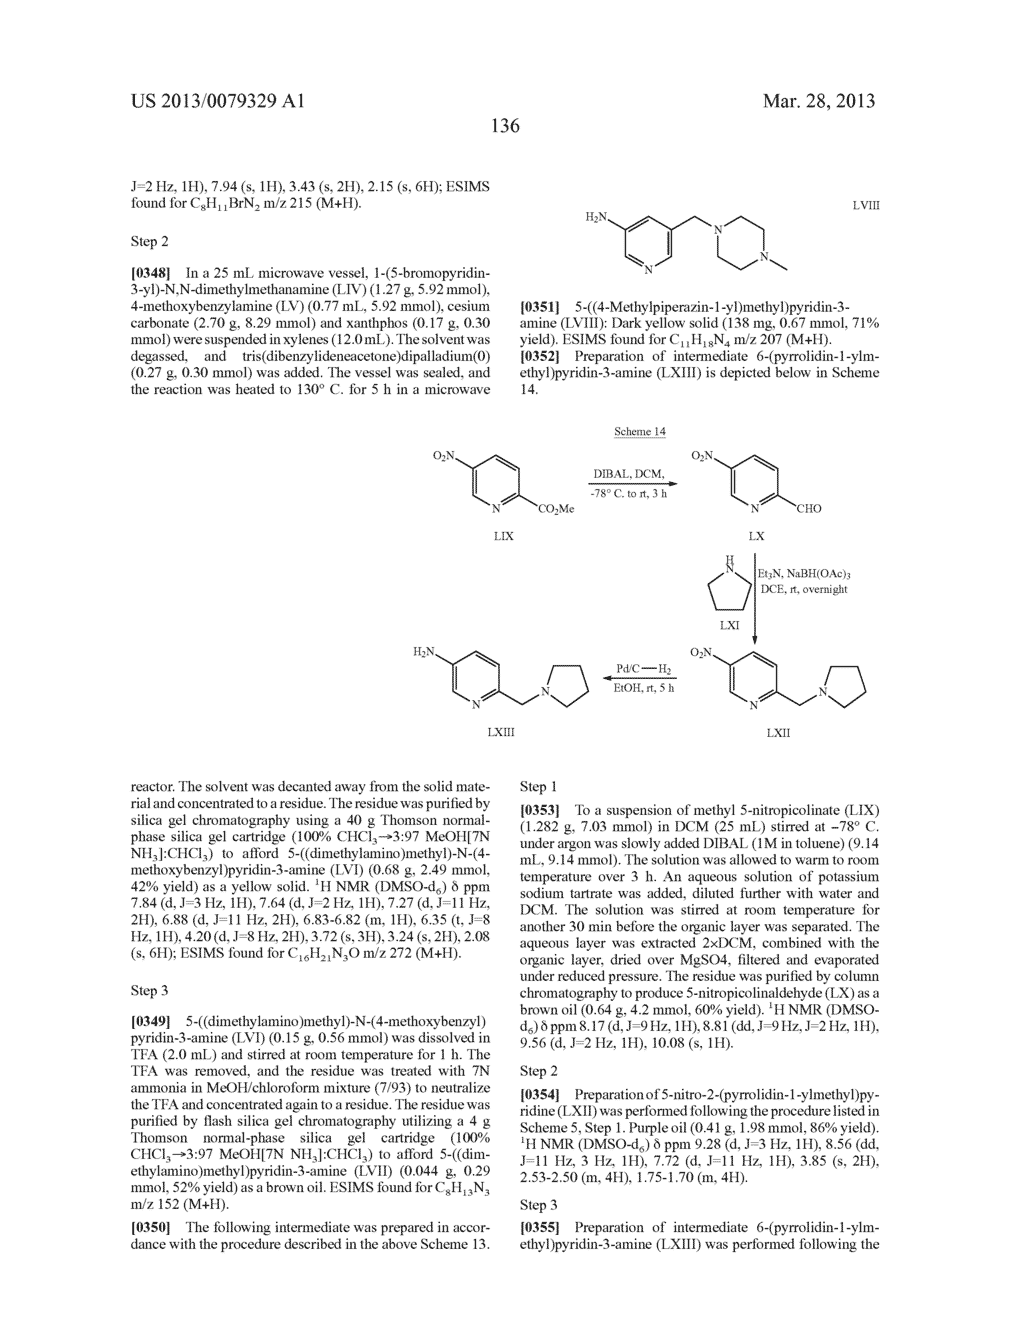 INDAZOLE-3-CARBOXAMIDES AND THEIR USE AS WNT/Beta-CATENIN SIGNALING     PATHWAY INHIBITORS - diagram, schematic, and image 137